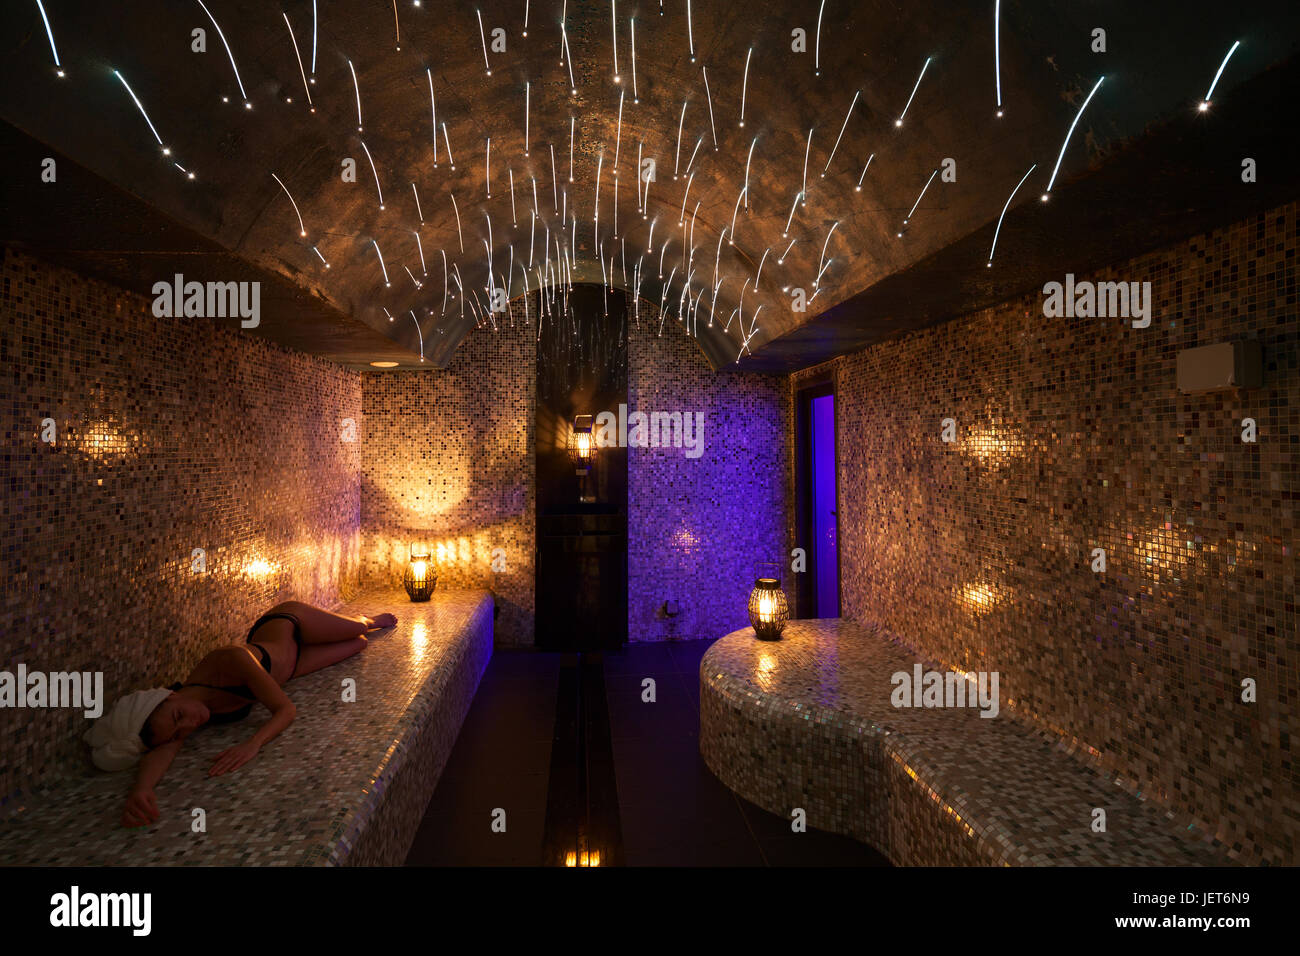 Europe, Italy, Helvetia Thermal SPA Hotel Porretta Terme  turkish bath with color therapy and soft lighting with - Stock Image